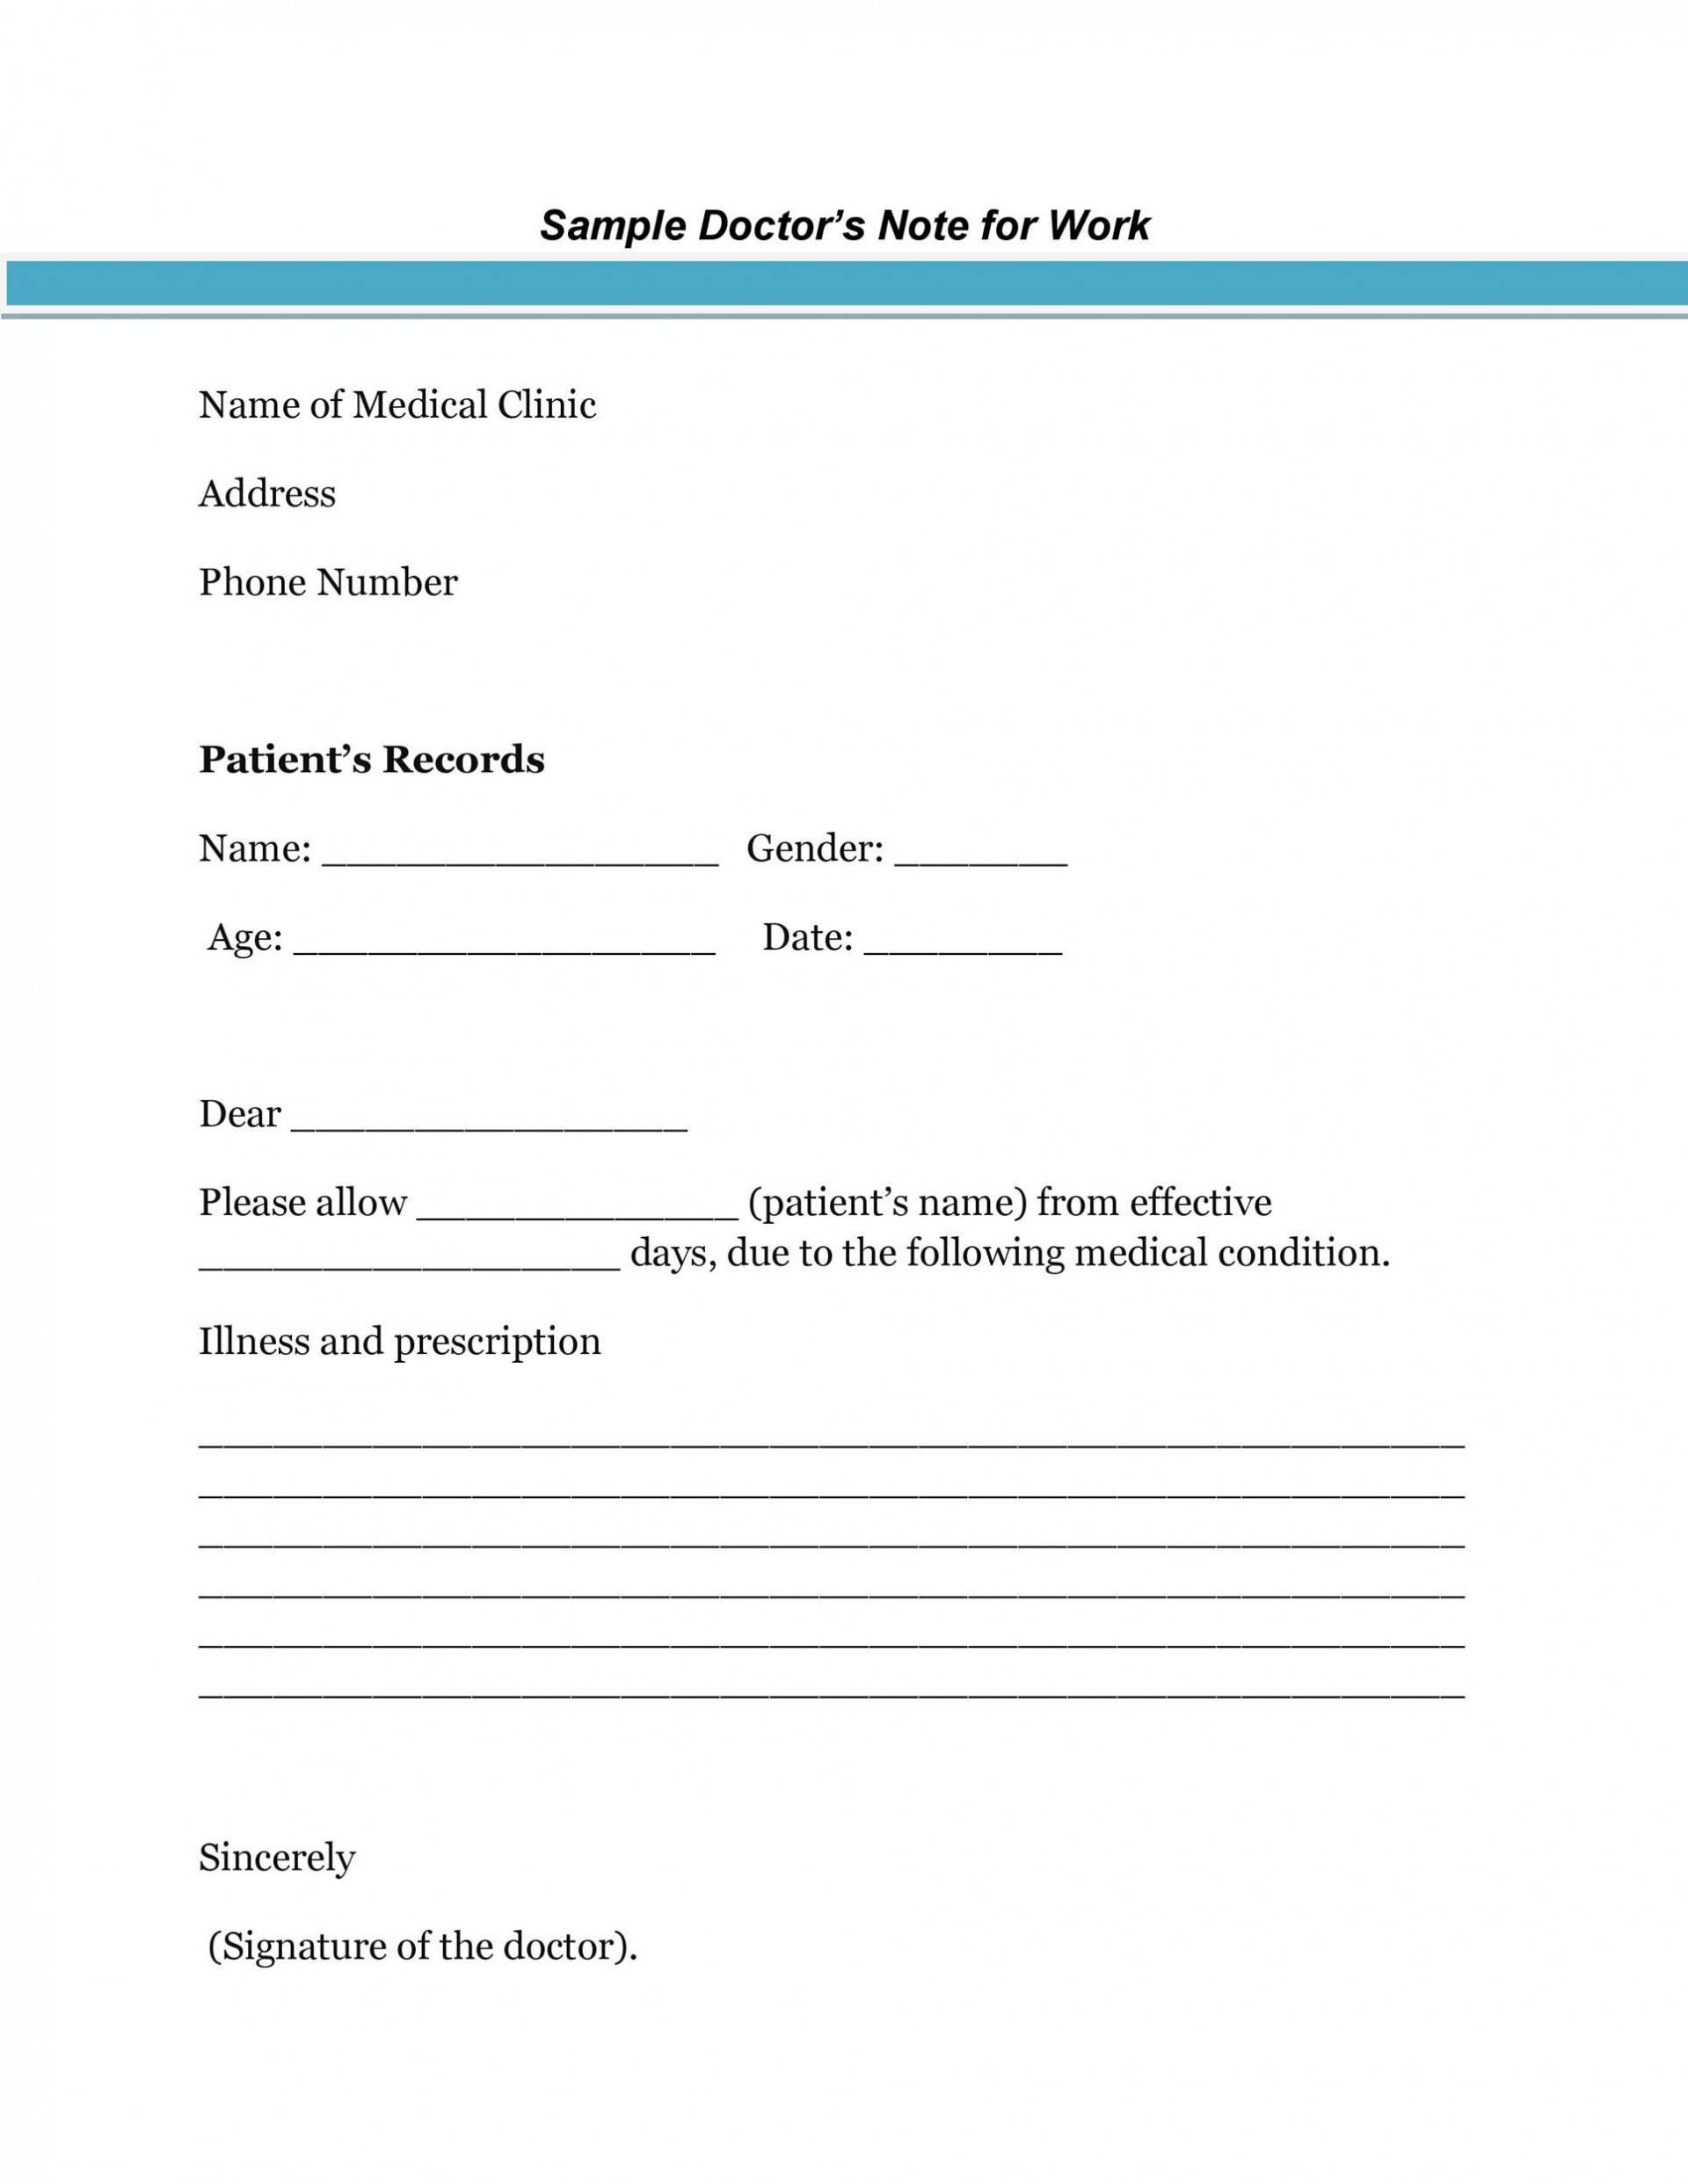 003 Awful Urgent Care Doctor Note Template High Resolution  Sample Fake Doctor' Printable1920